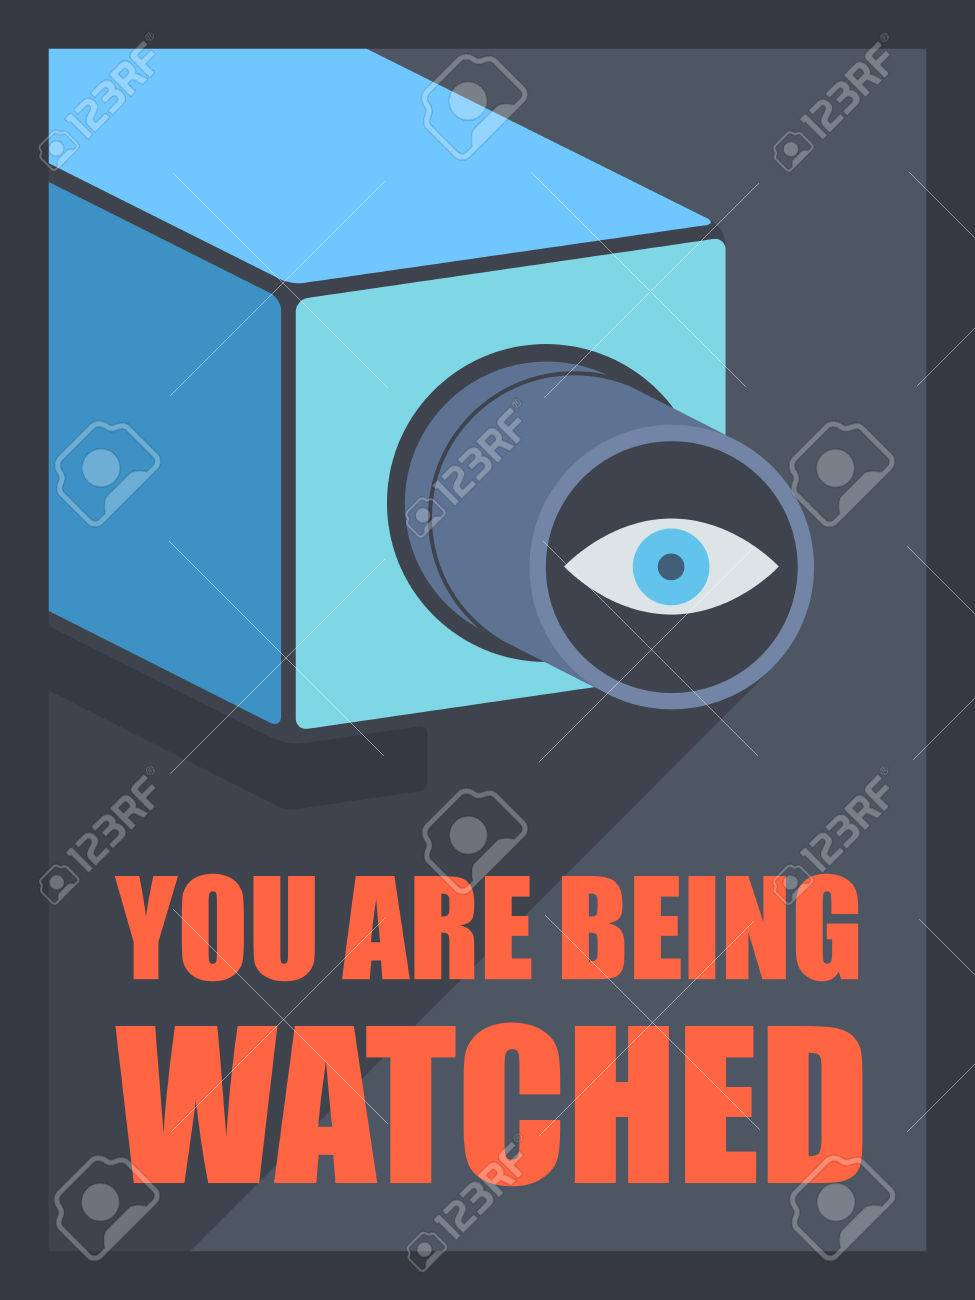 Flat design style modern vector illustration poster concept of video surveillance by the security service through CCTV camera, privacy control protection and public safety monitoring  Isolated on black background Stock Vector - 25514356